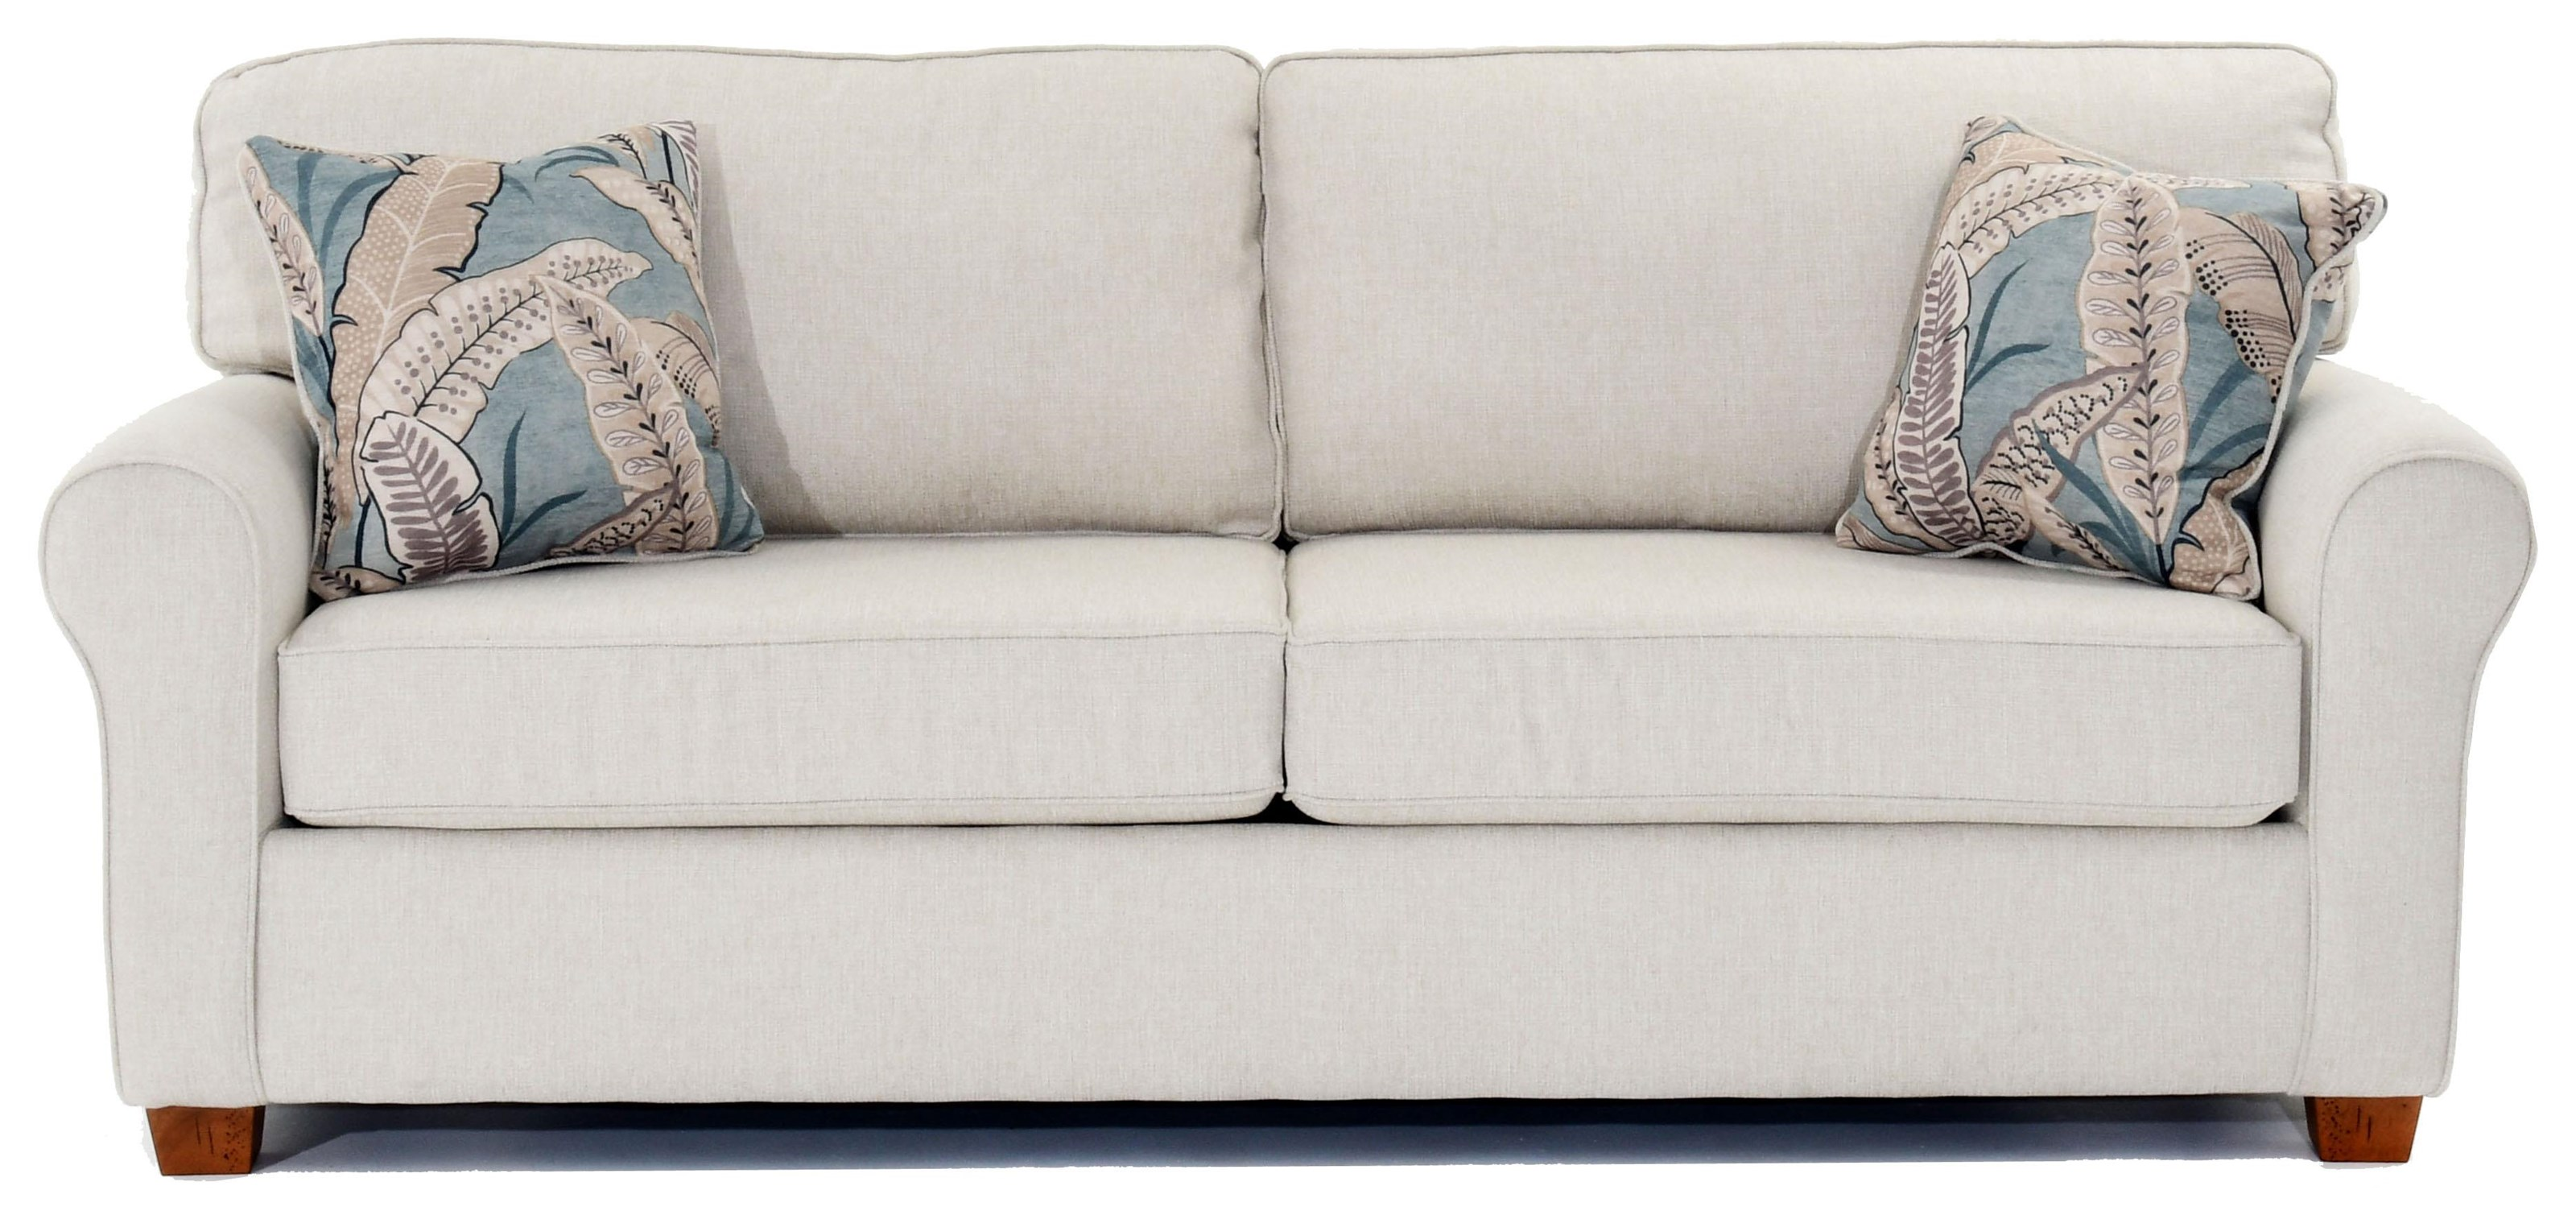 Shannon Queen Sofa Sleeper w/ Air Dream Mattress by Best Home Furnishings at Baer's Furniture